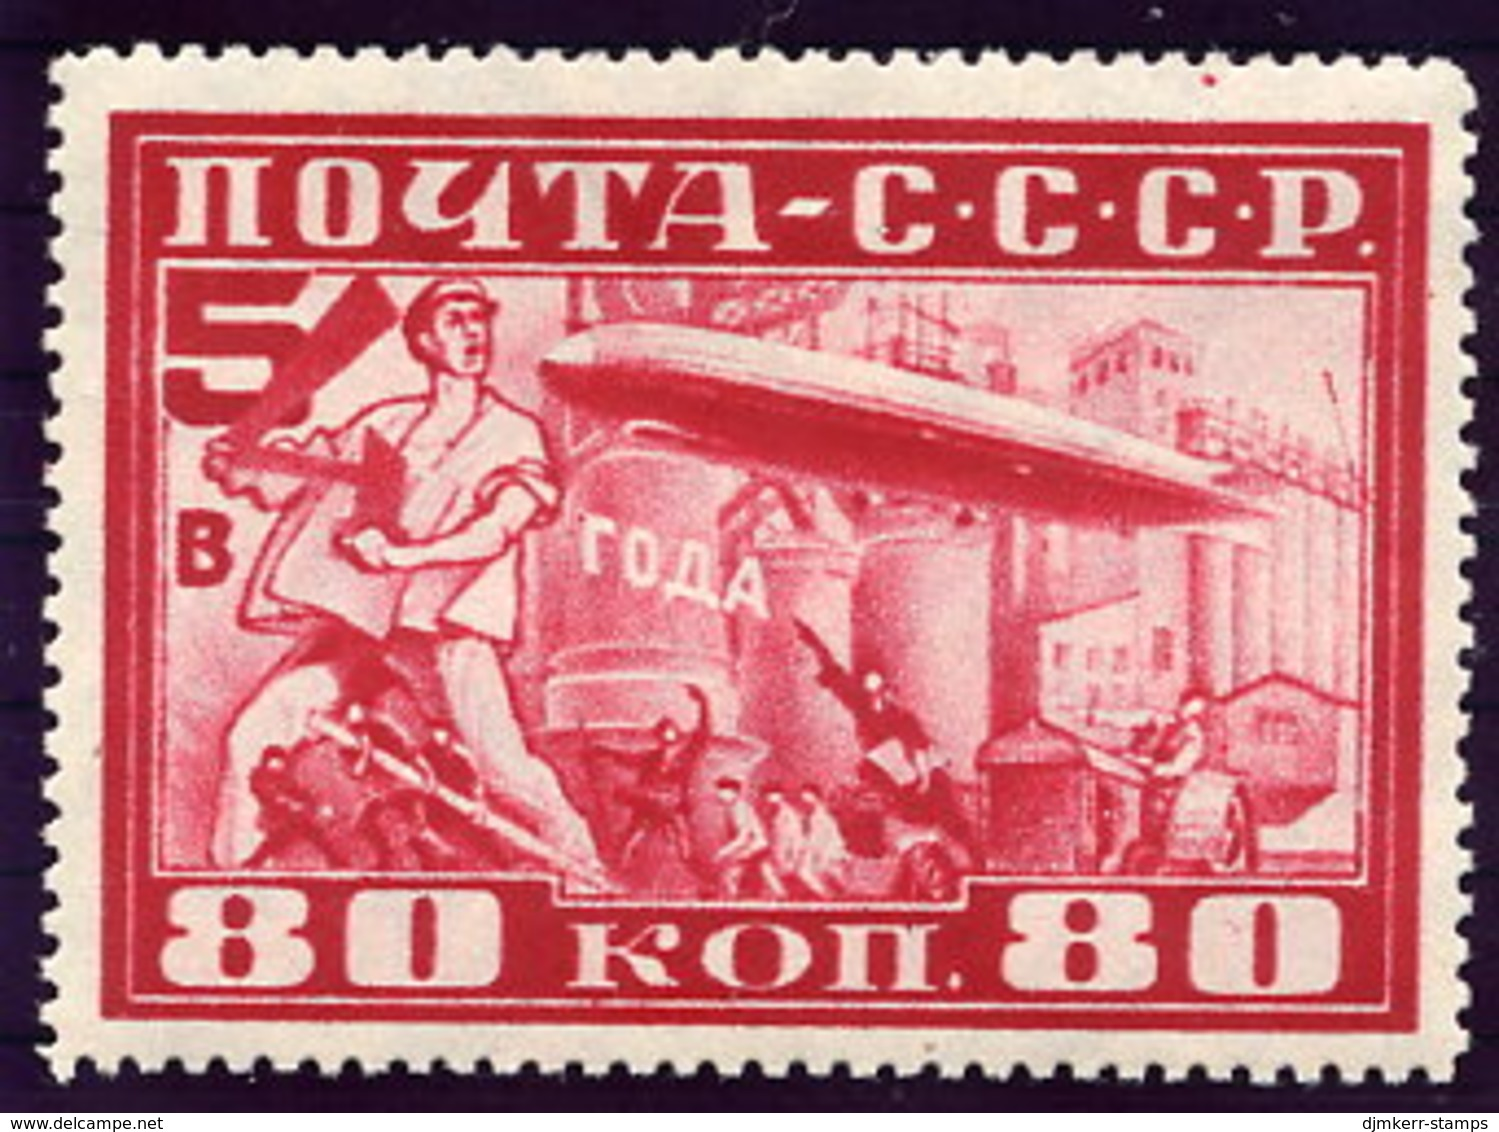 SOVIET UNION 1930 Zeppelin Moscow Flight 80 K. Perf. 12½  LHM / *.  Michel 391A - Unused Stamps